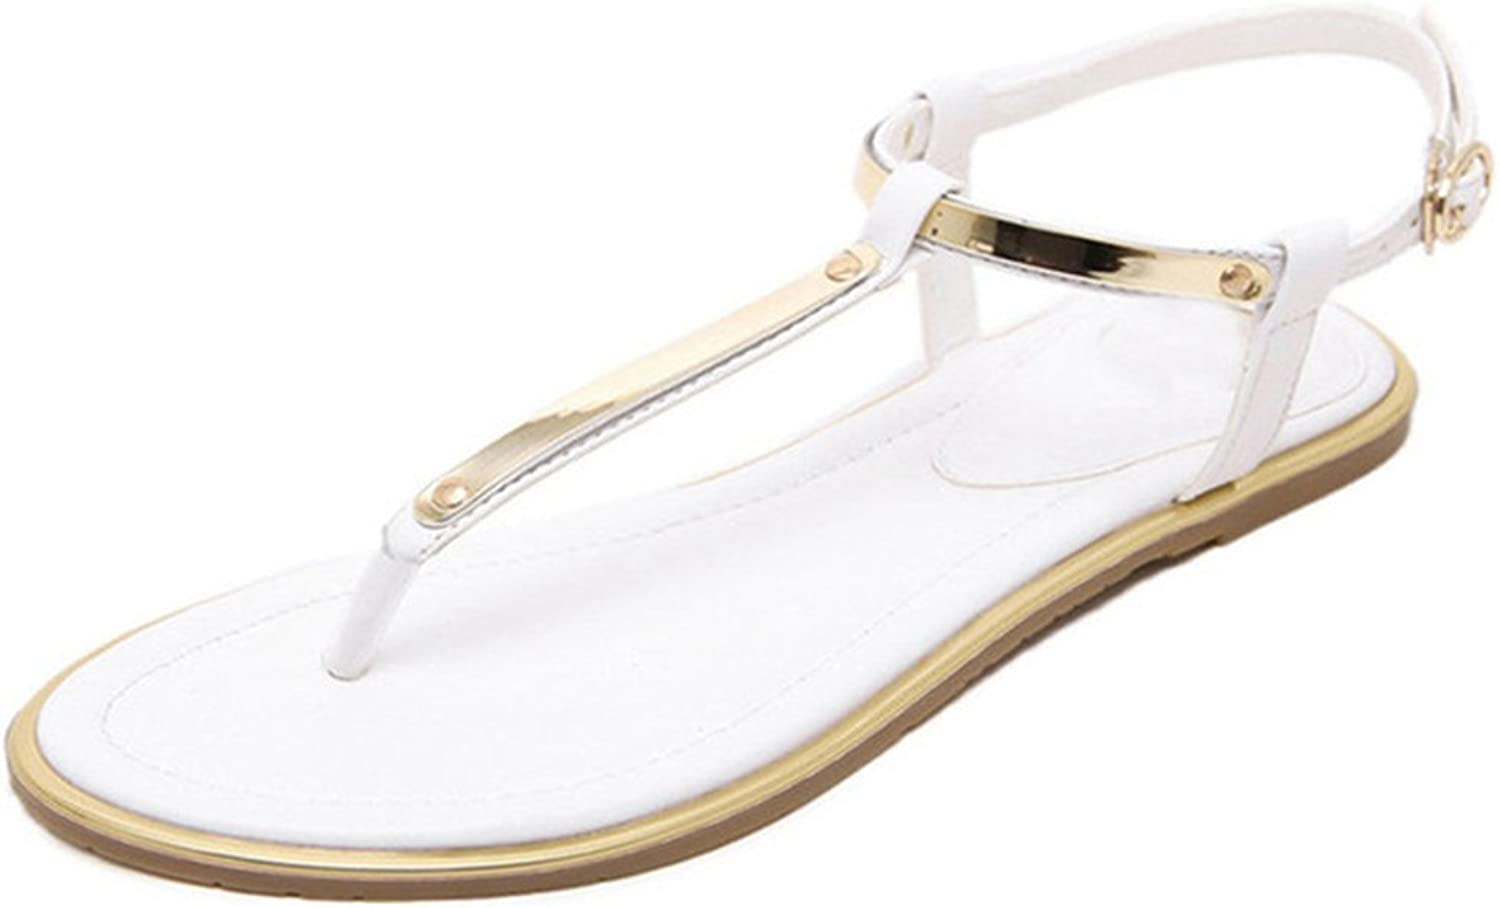 Giles Jones Flat Flip-Flops Sandals for Women-Sweet Sequined Antiskid T-Strap Buckle Clip Toe Beach shoes